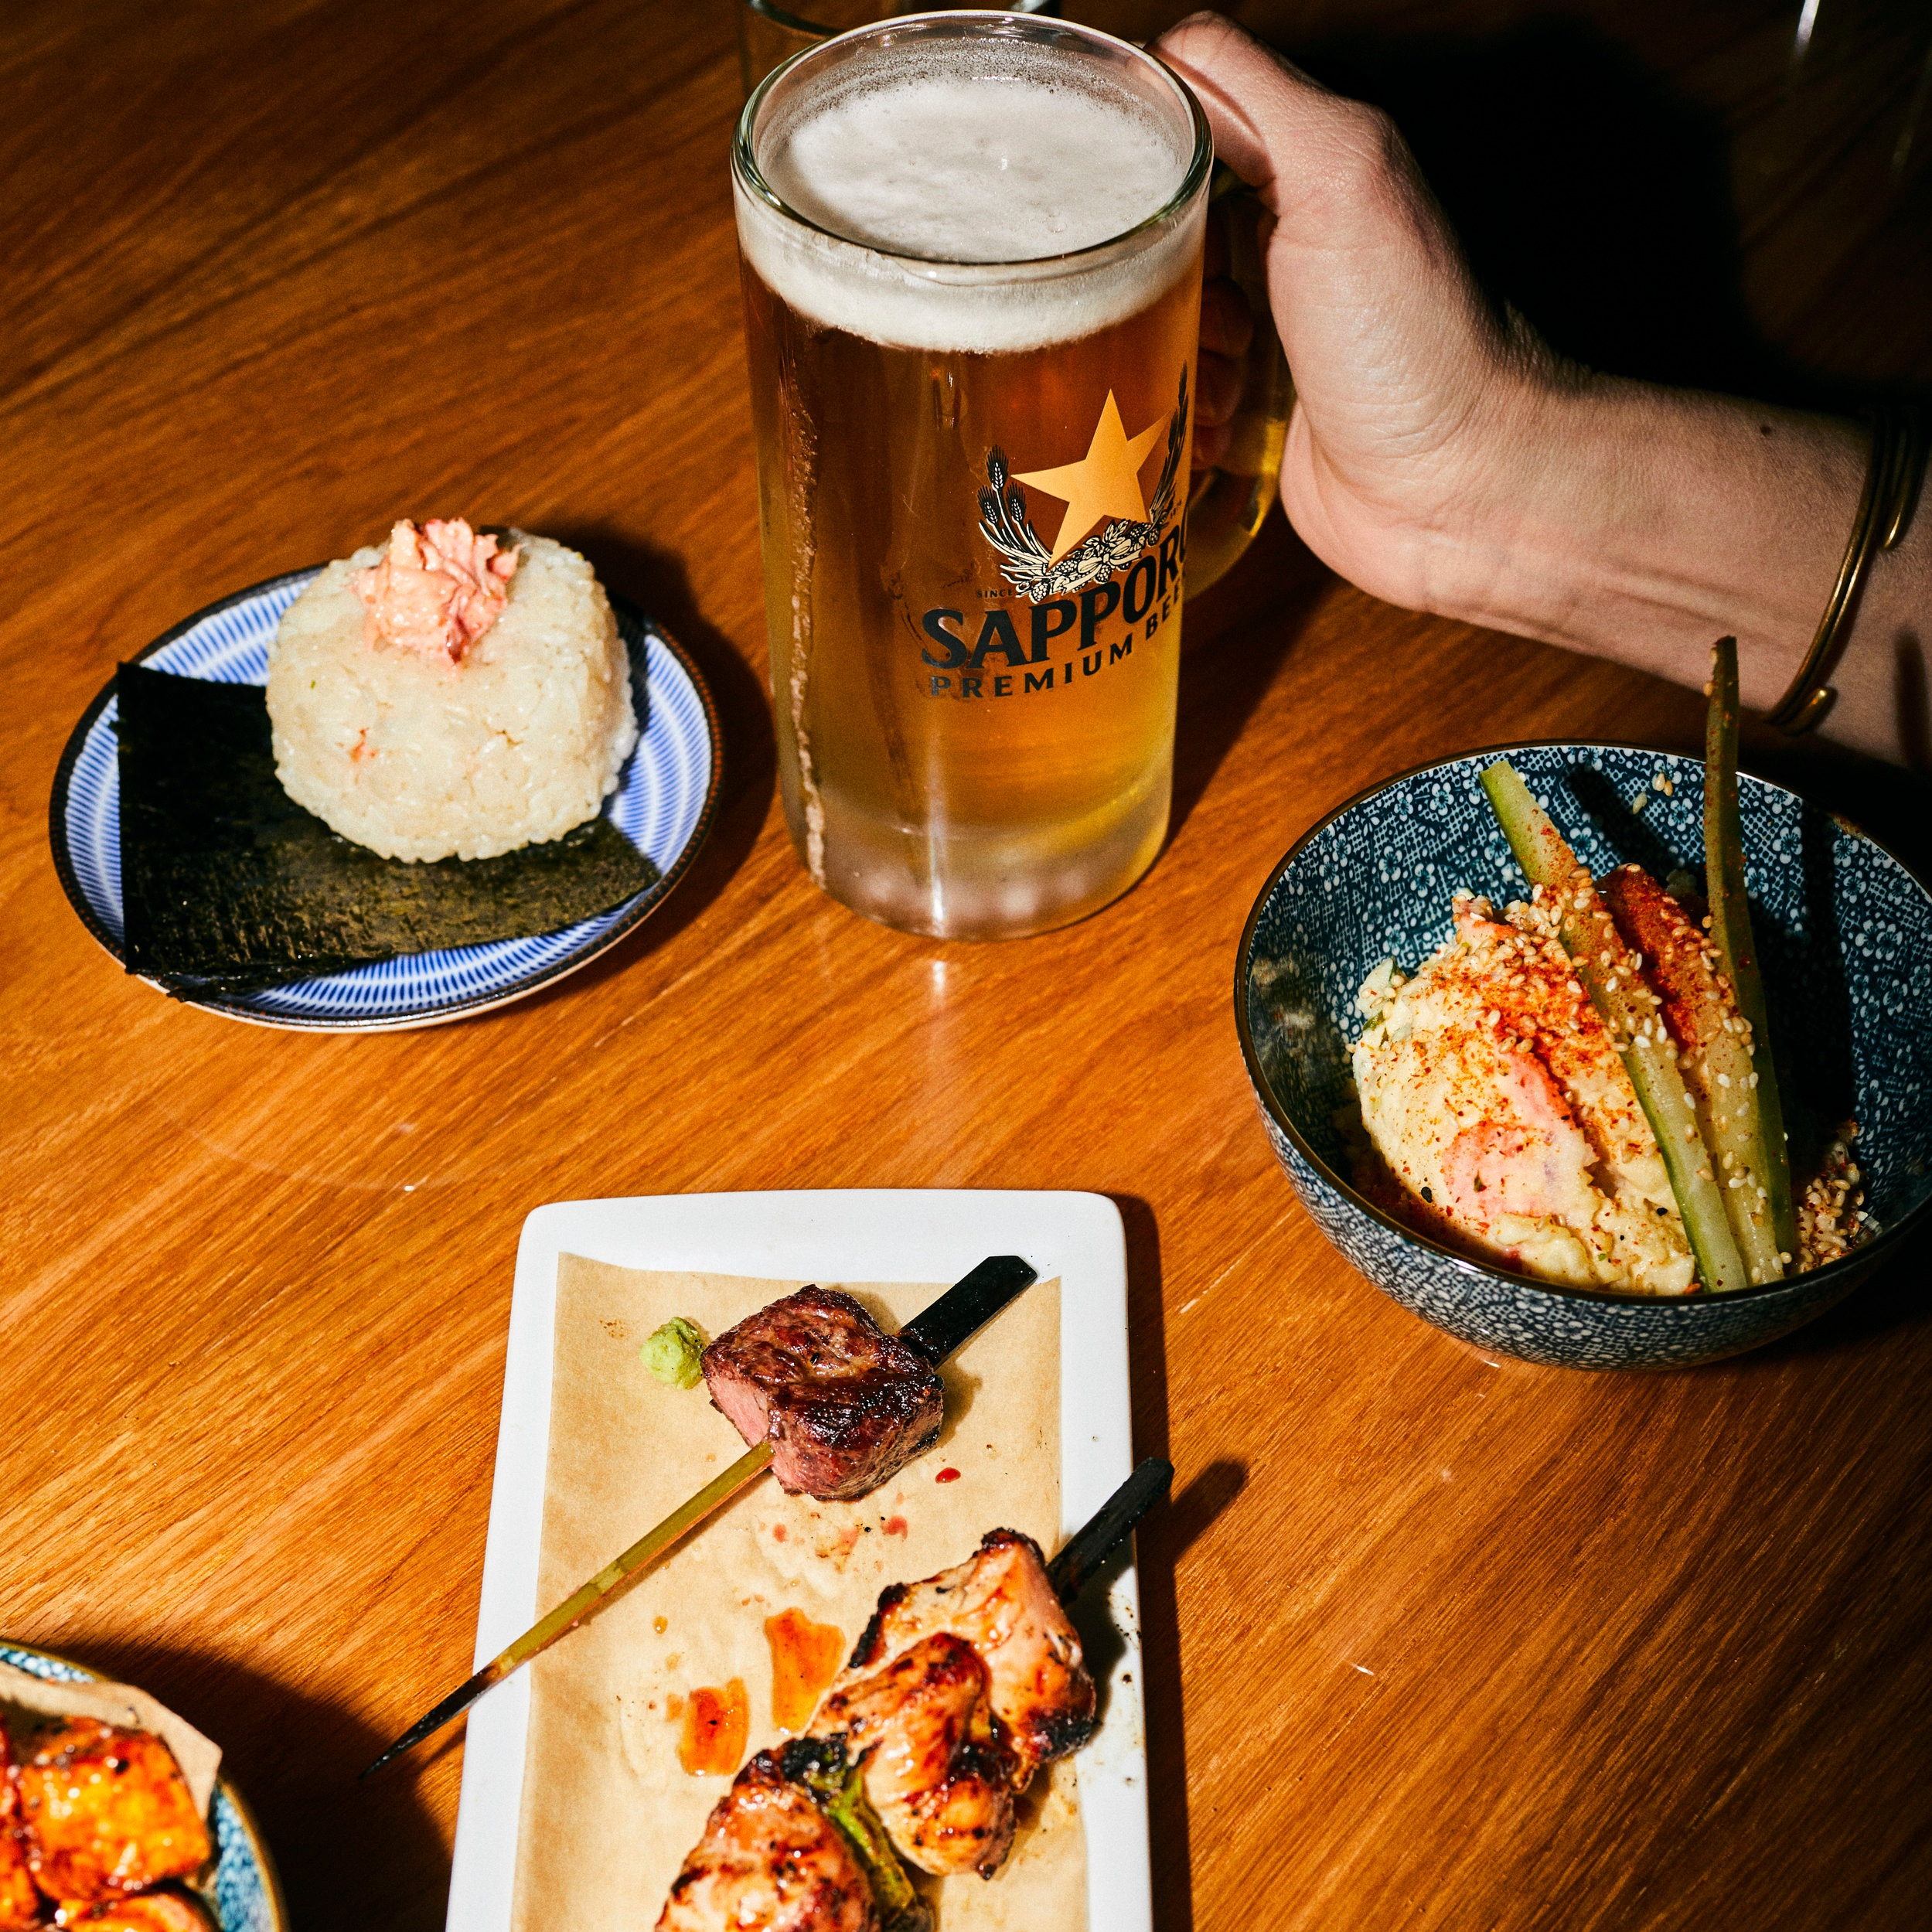 - A classic Izakaya from the team behind OTAKU RAMEN serving beer, sake, yakatori and Japanese soul foodAn izakaya (居酒屋) (Japanese: [izakaja]) is a type of informal Japanese pub. They are casual places for after-work drinking and eating.